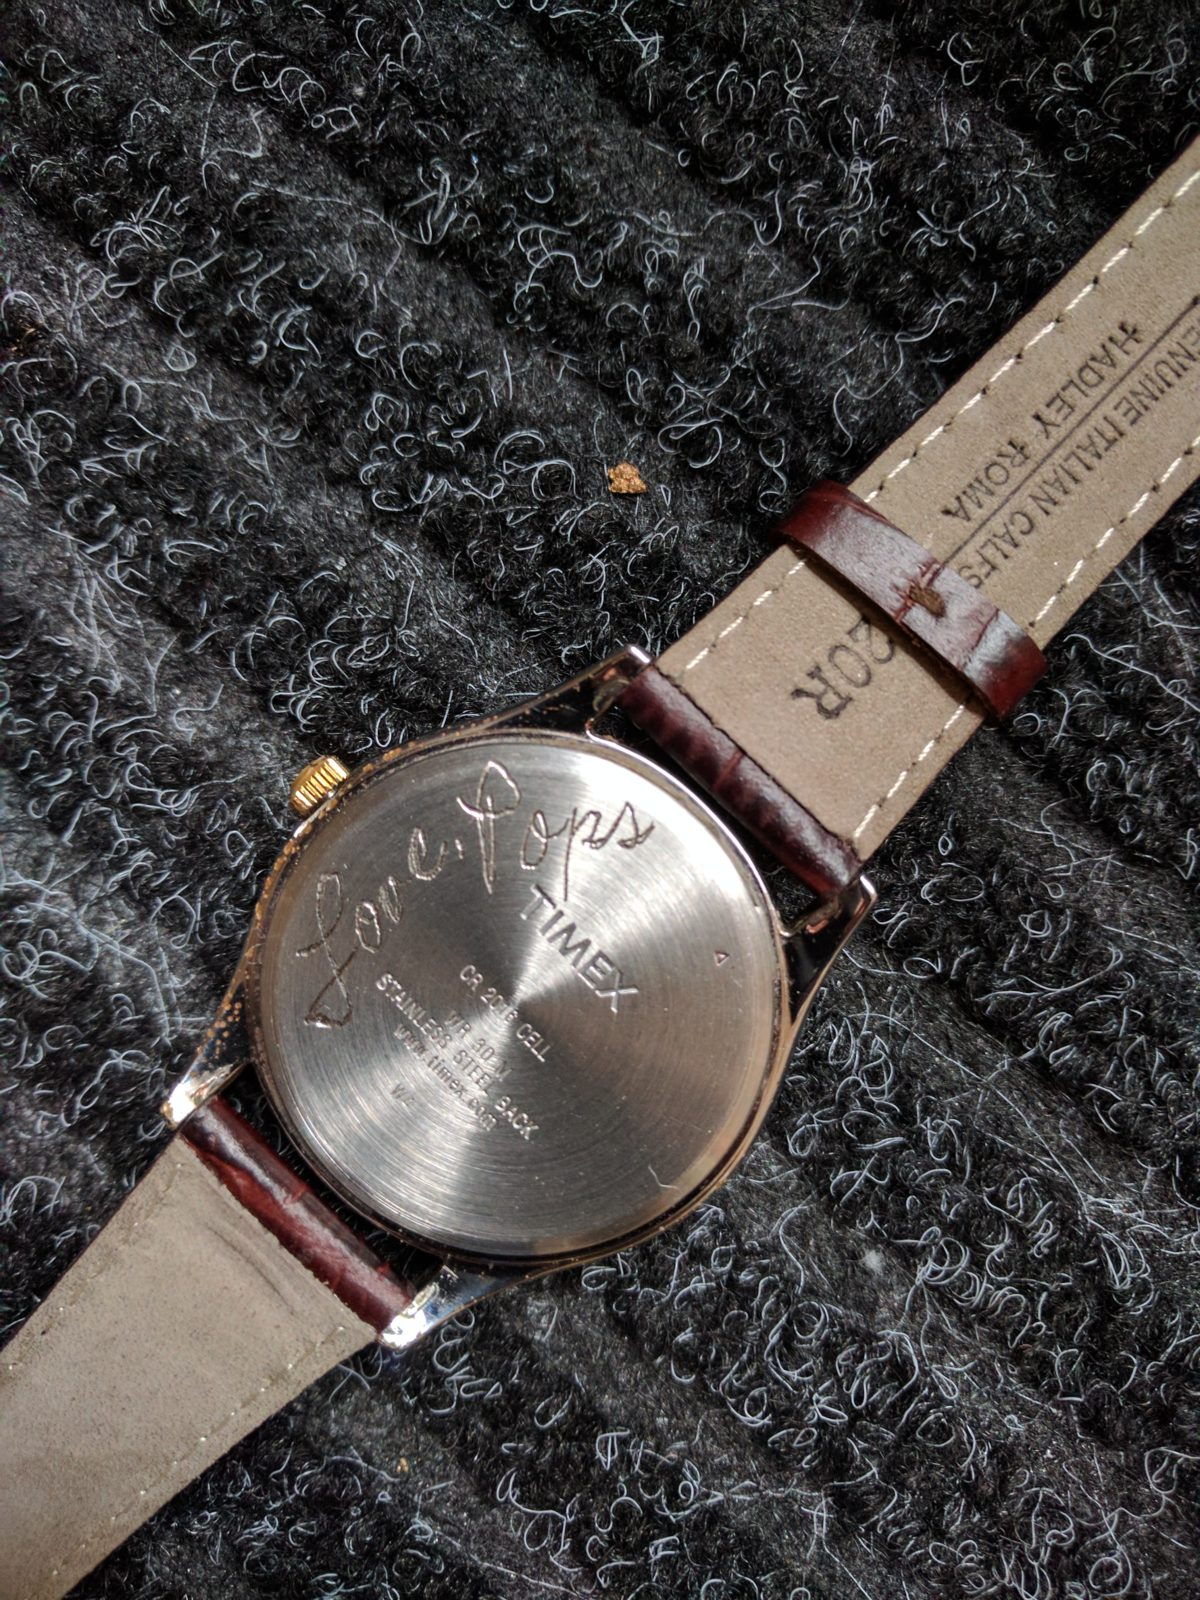 Engraved Watches Become Precious Keepsakes with A Loved One's Handwriting